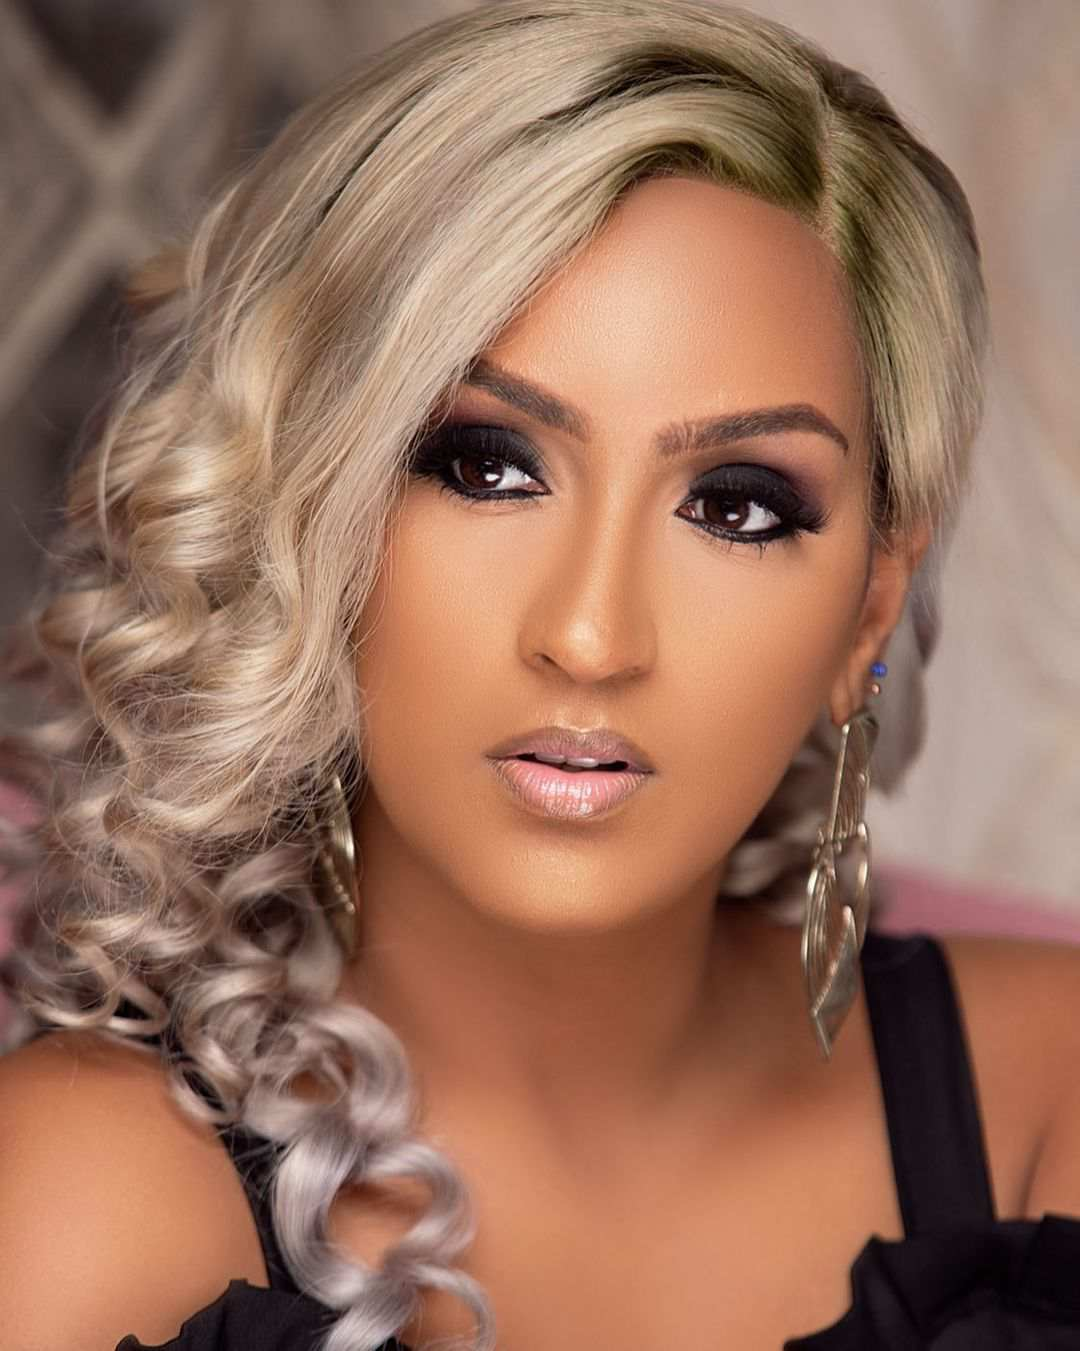 """Stop making women feel less beautiful"" - Juliet Ibrahim blast fan who praised her for having flat stomach"